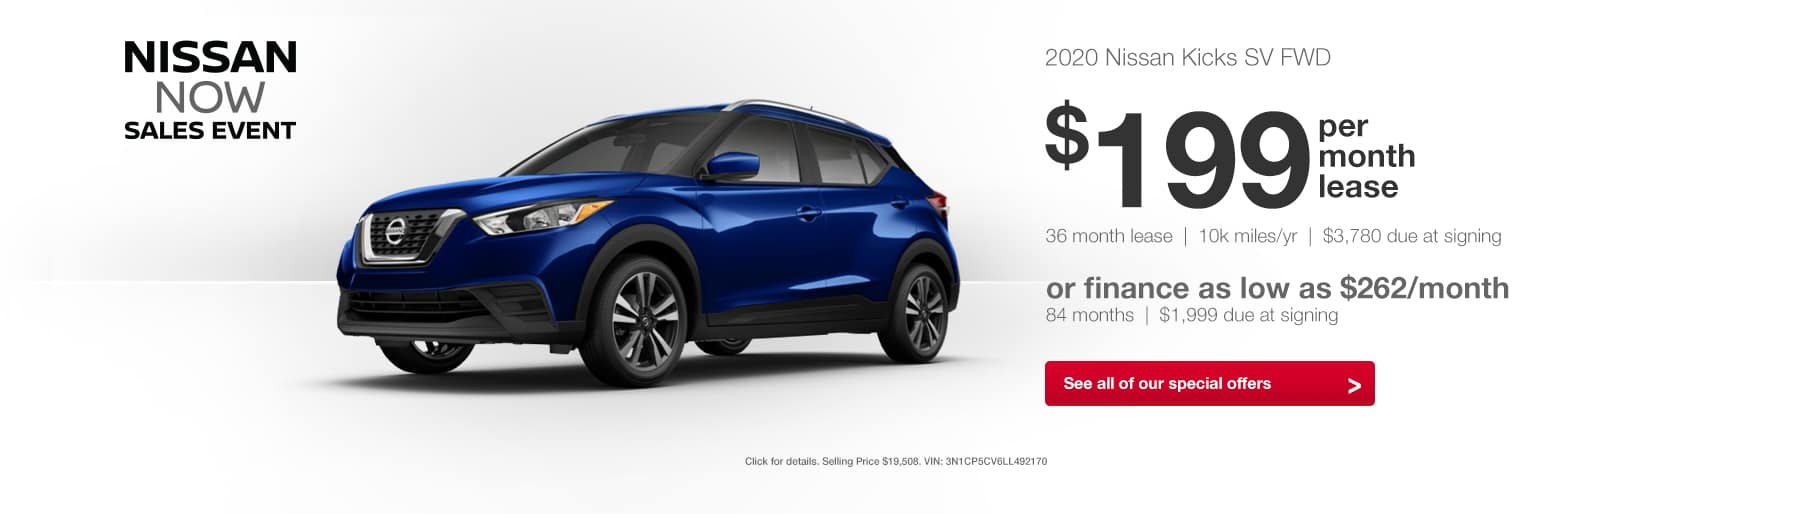 2020 Nissan Kicks Nissan Now Sales Event Lease Finance Special